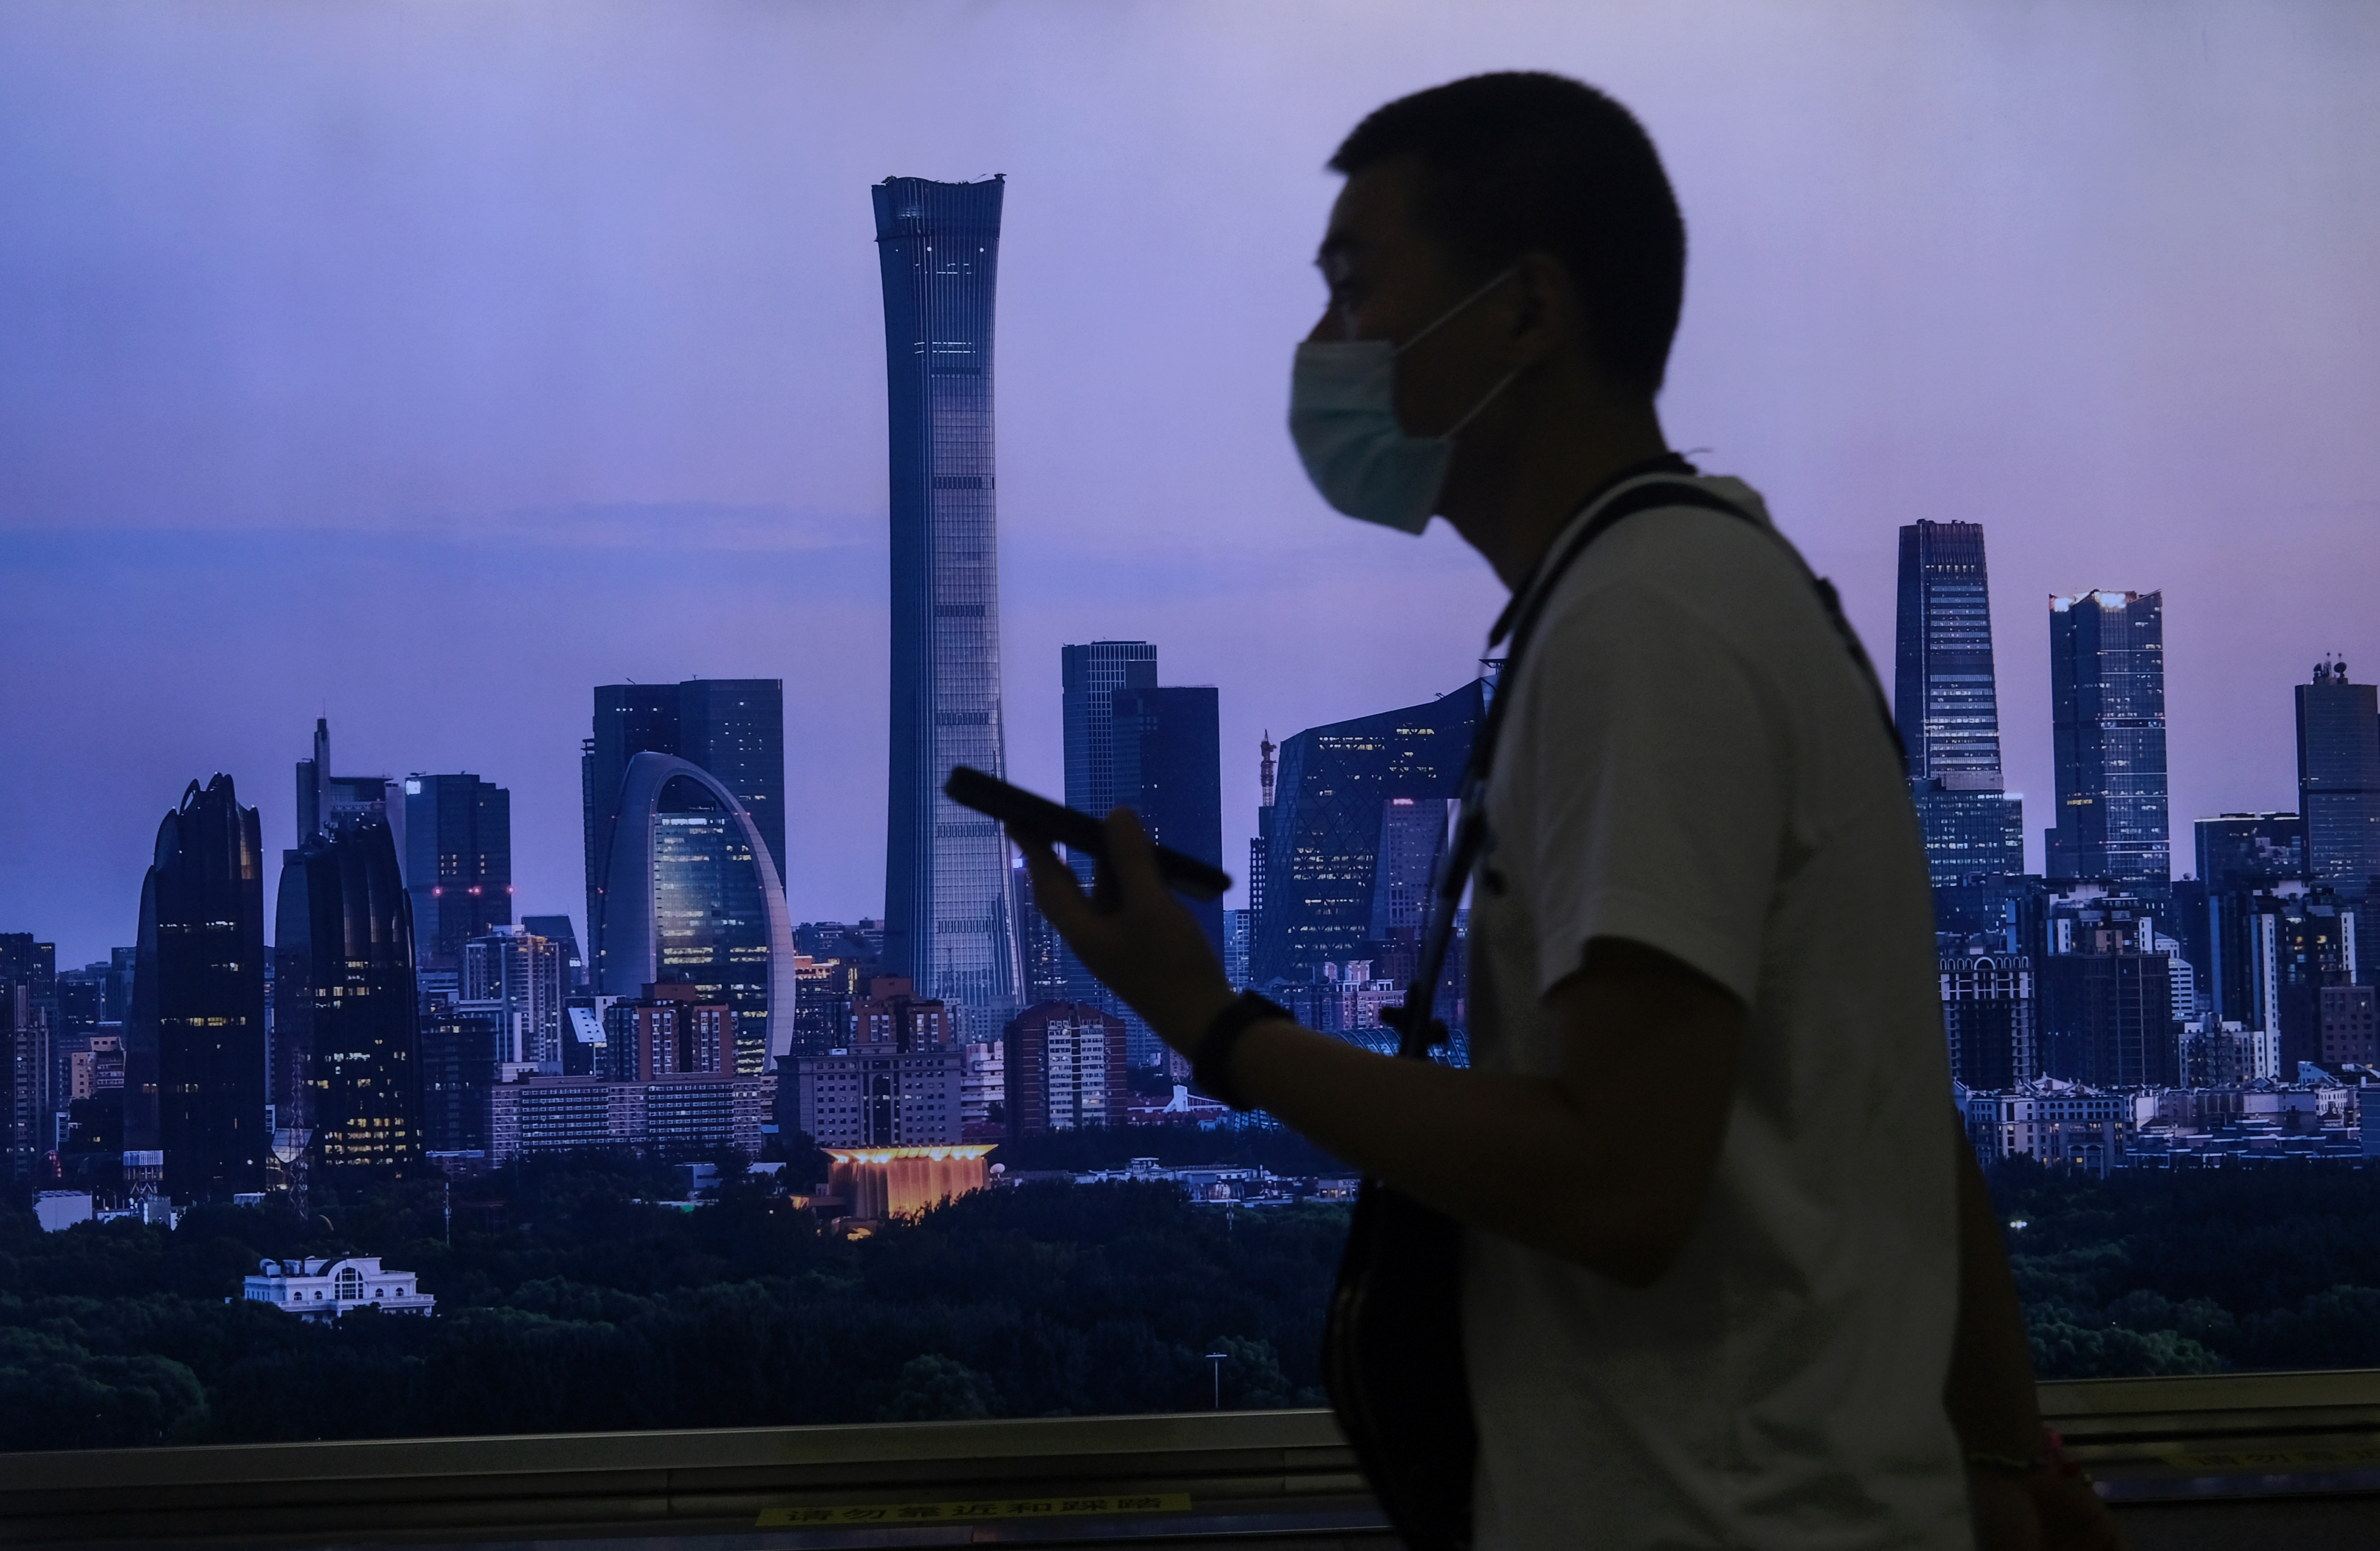 A man wearing a face mask walks past a billboard showing Beijing's city skyline at a subway station, following the coronavirus disease (COVID-19) outbreak, in Beijing, China June 30, 2020. REUTERS/Tingshu Wang/File Photo